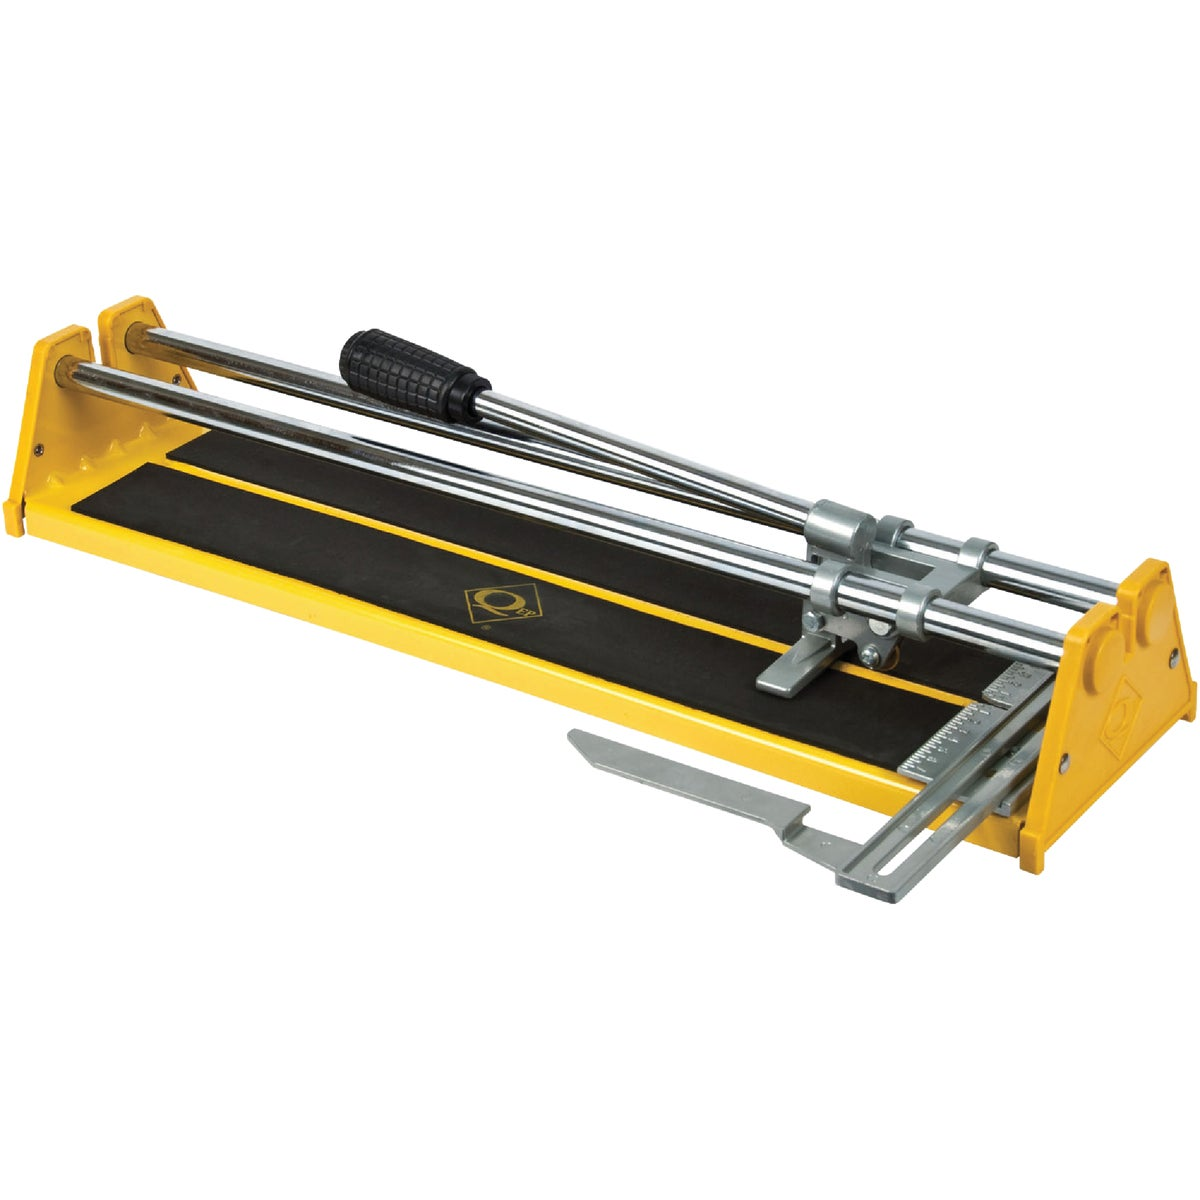 "20"" MANUAL TILE CUTTER - 10220Q by Qep Co Inc Roberts"